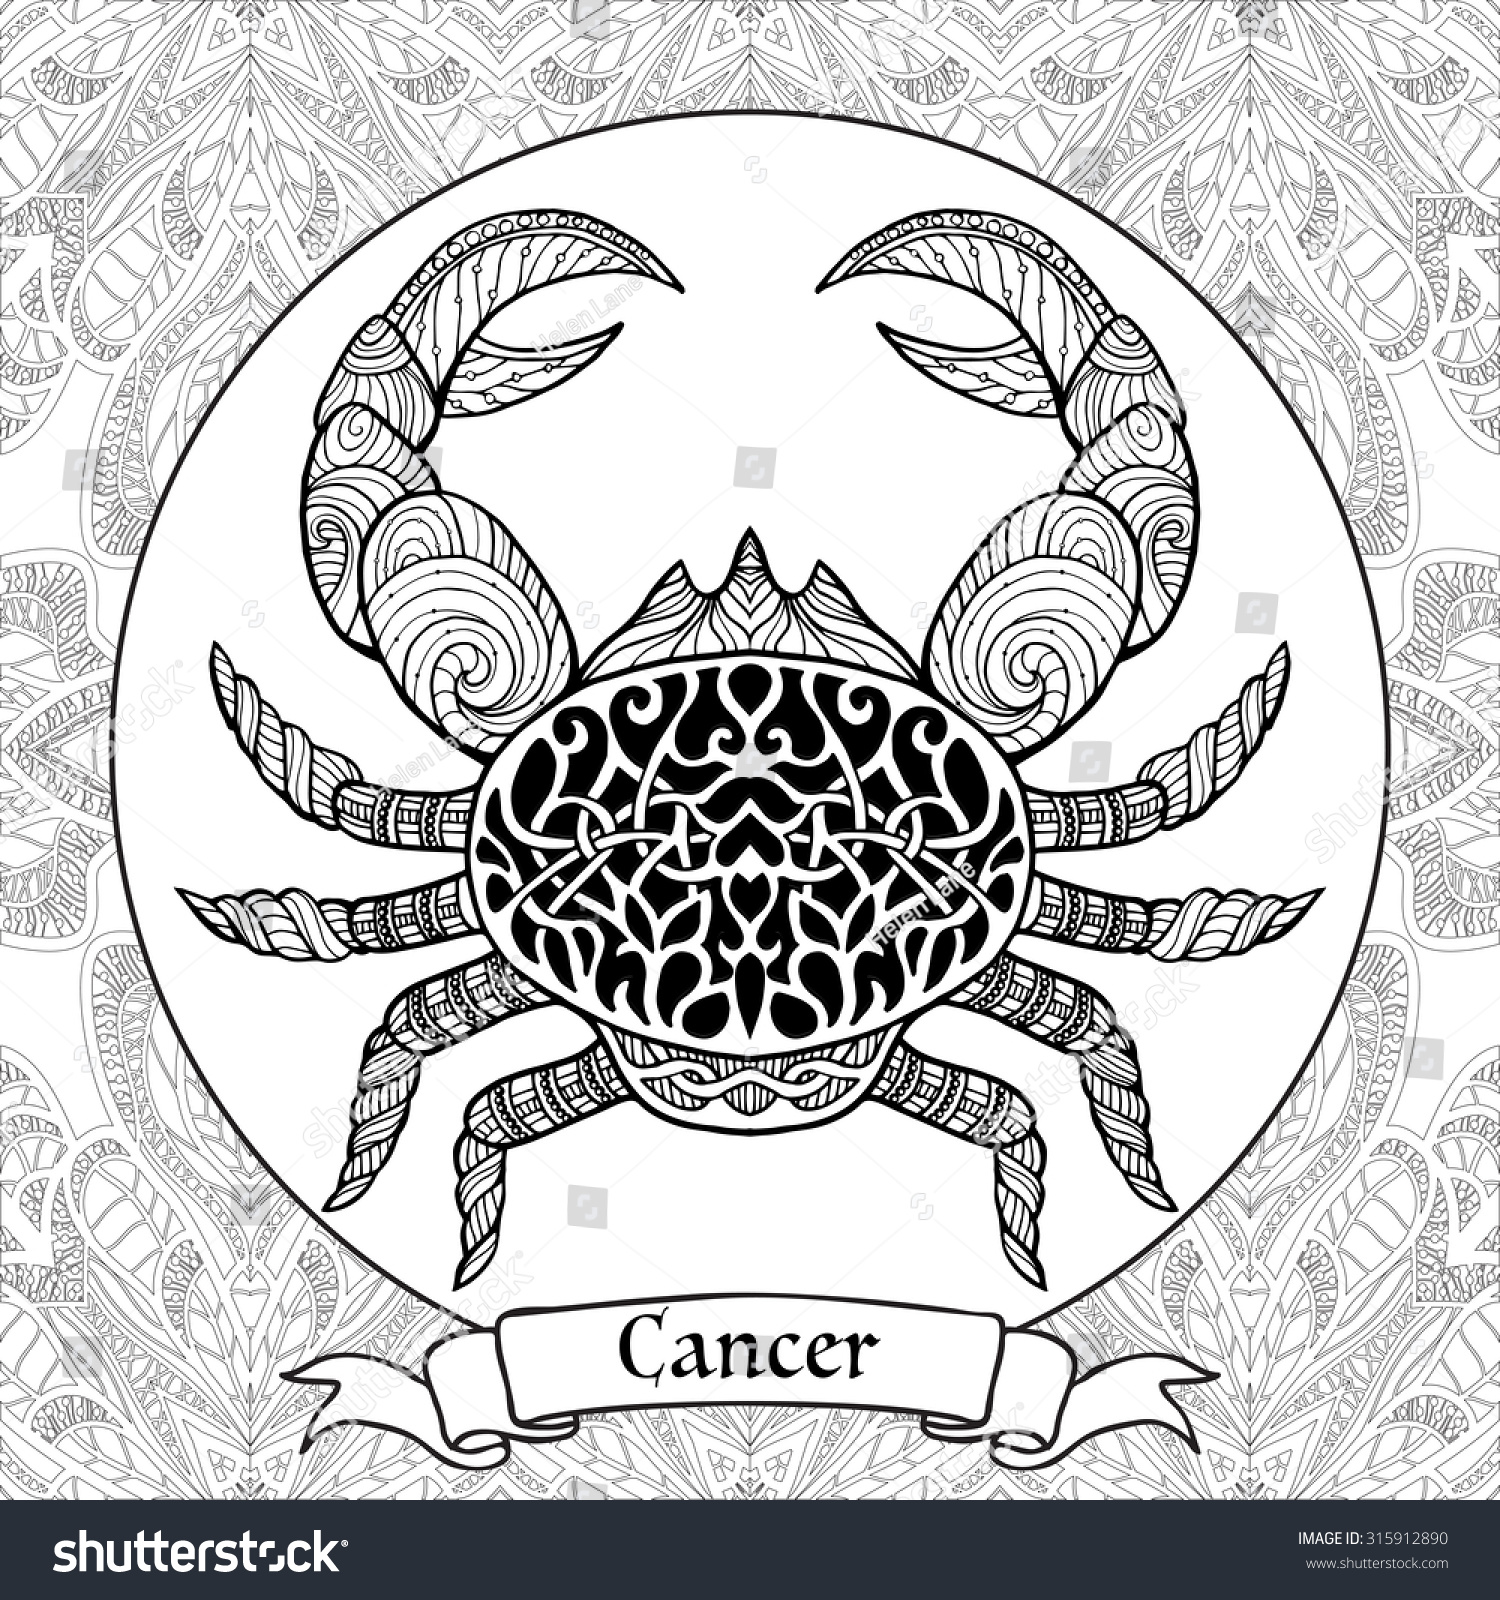 clip art cancer coloring pages coloring page pattern zodiac sign cancer stock vector 315912890 with and